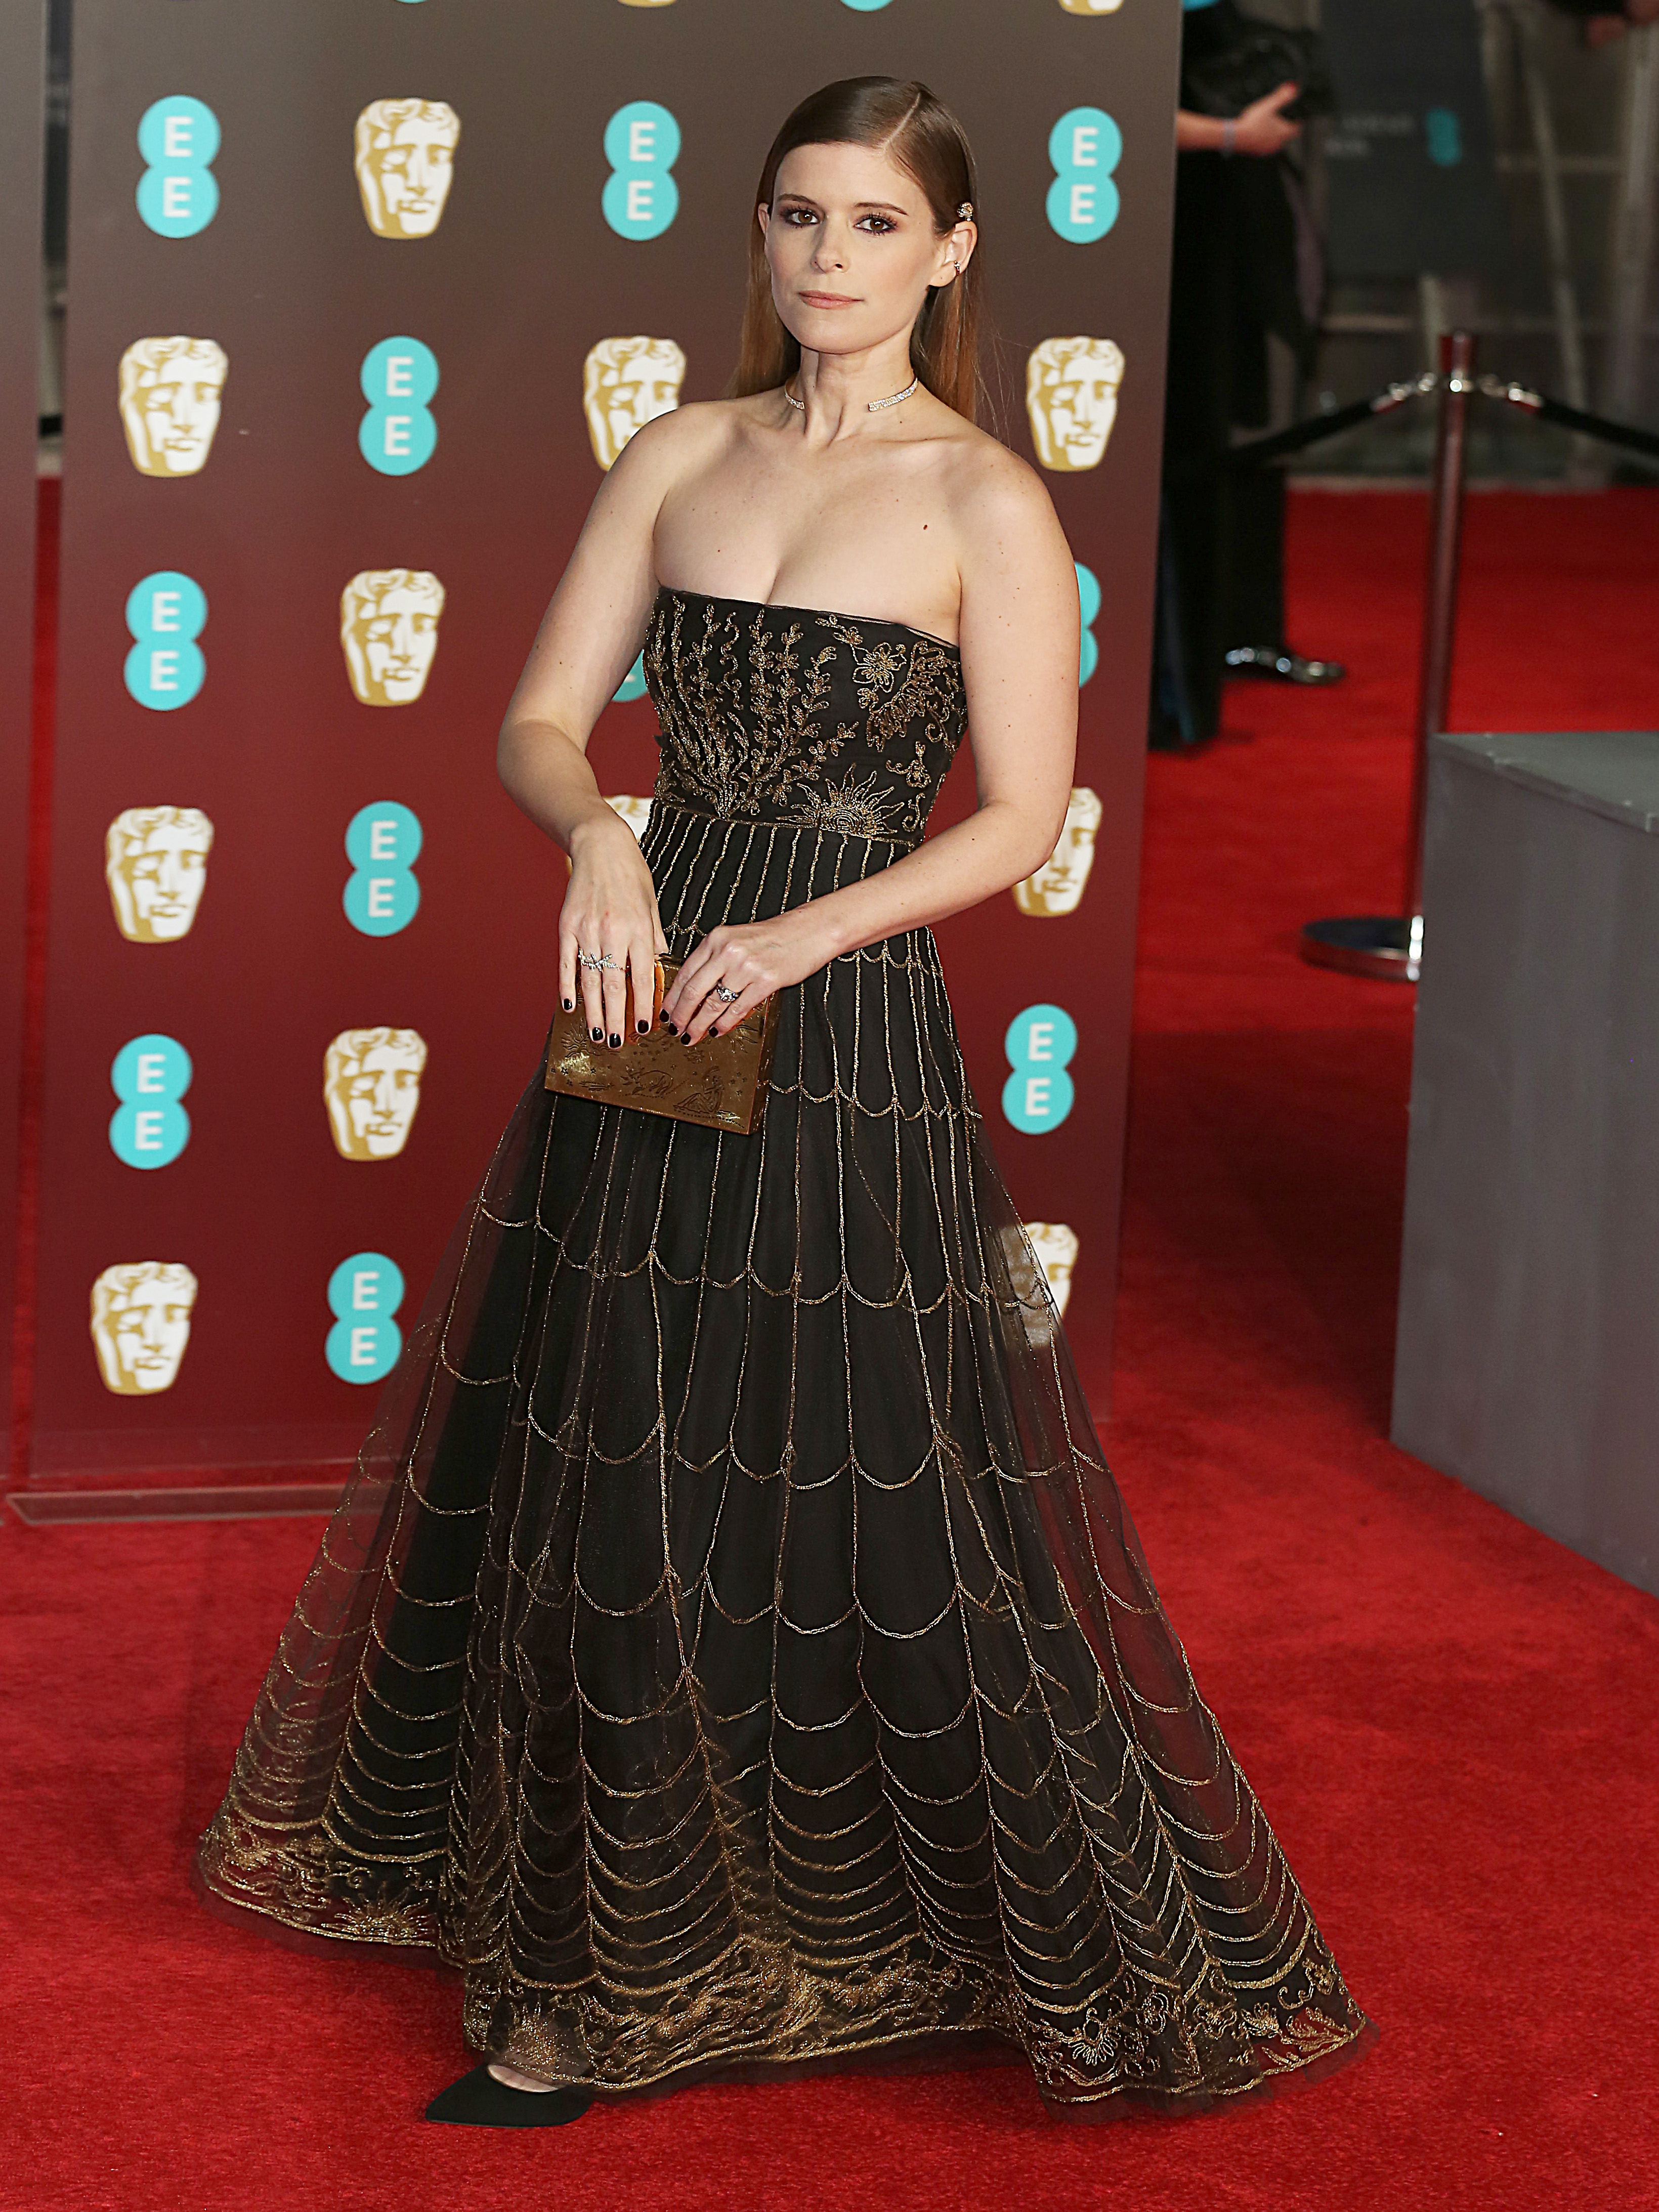 EE British Academy Film Awards 2018 (BAFTAs), Royal Albert Hall, London UK, 18 February 2018, Photo by Brett D. Cove <P> Pictured: Kate Mara <B>Ref: SPL1661266  190218  </B><BR/> Picture by: Brett D. Cove / Splash News<BR/> </P><P> <B>Splash News and Pictures</B><BR/> Los Angeles:310-821-2666<BR/> New York:212-619-2666<BR/> London:870-934-2666<BR/> <span id=